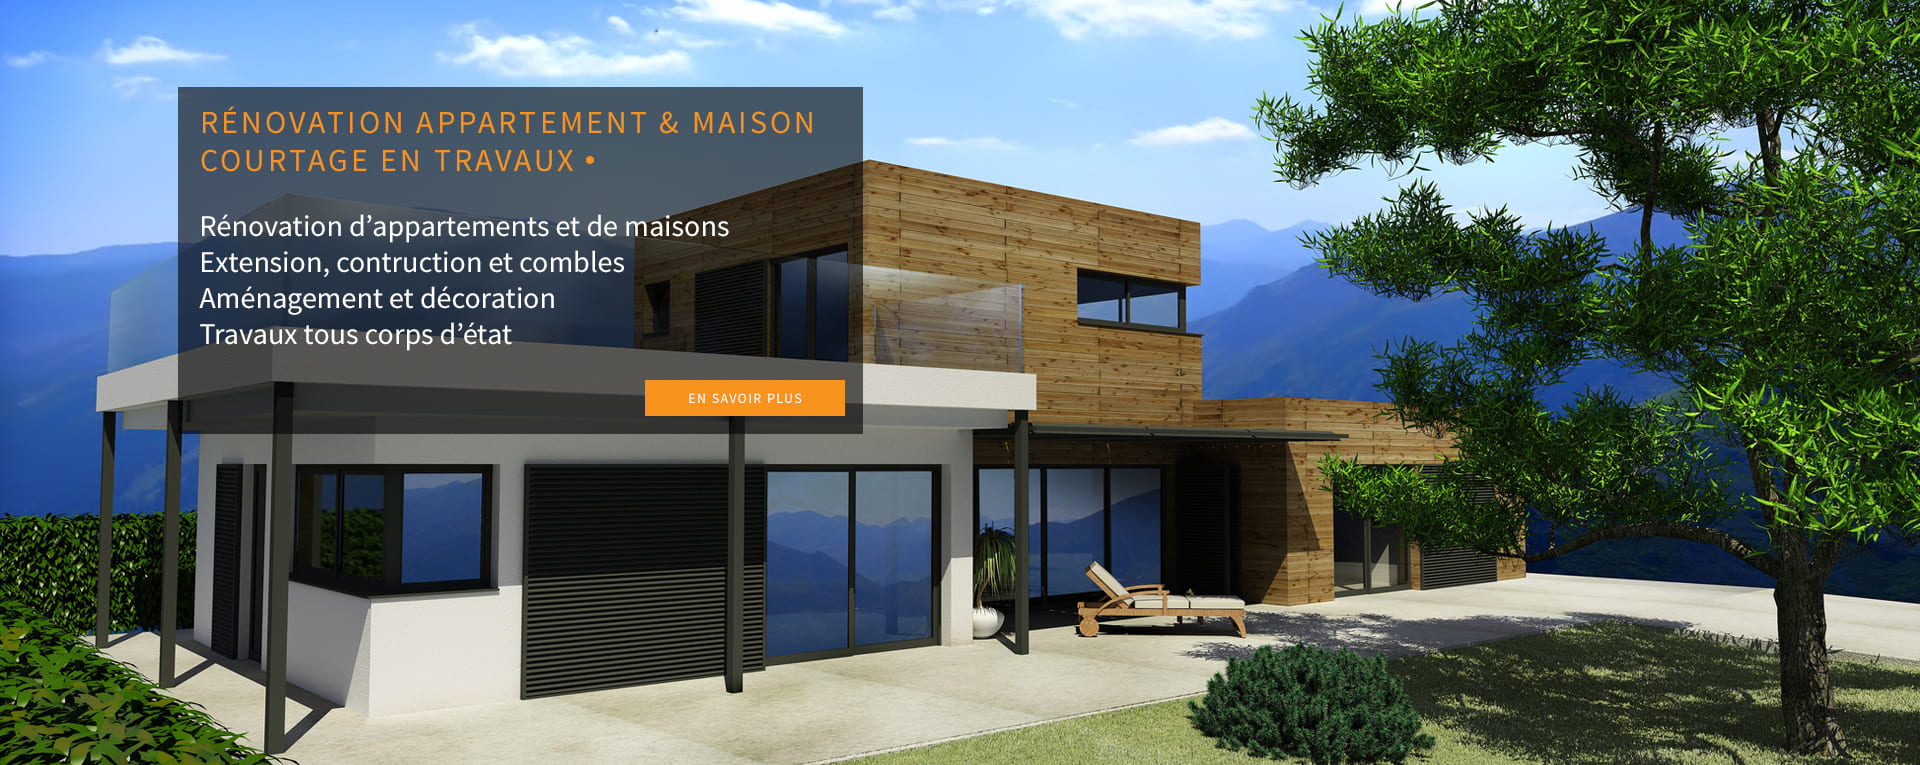 Extension, Agrandissement de maison